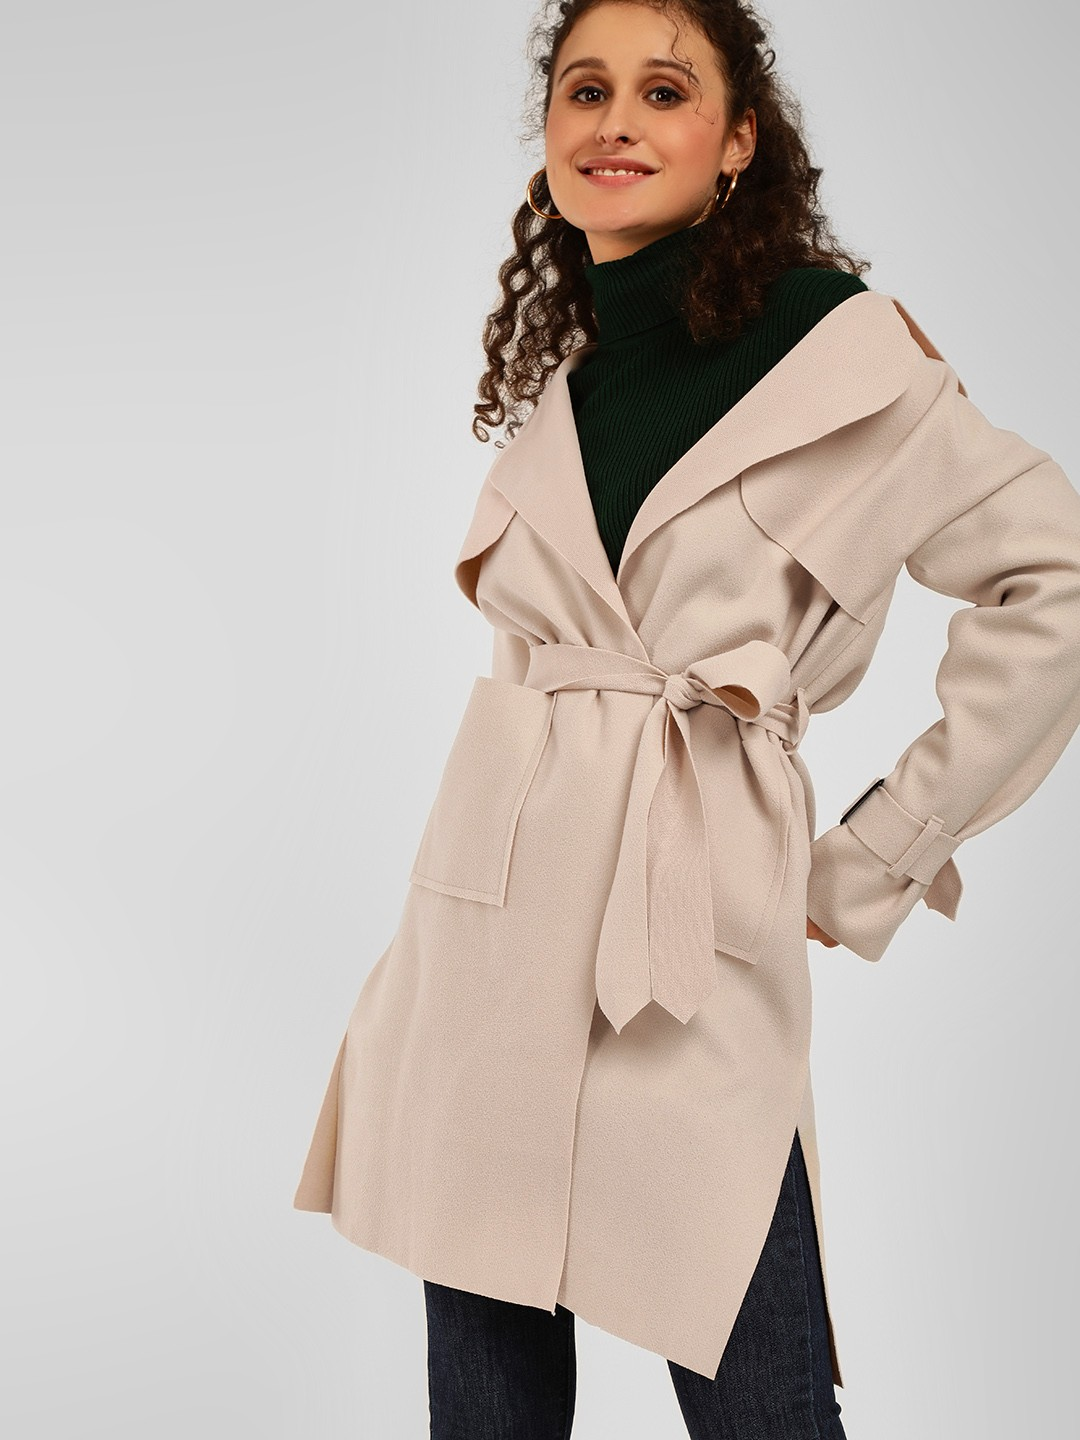 Origami Lily Beige Front Tie-Up Trench Coat 1